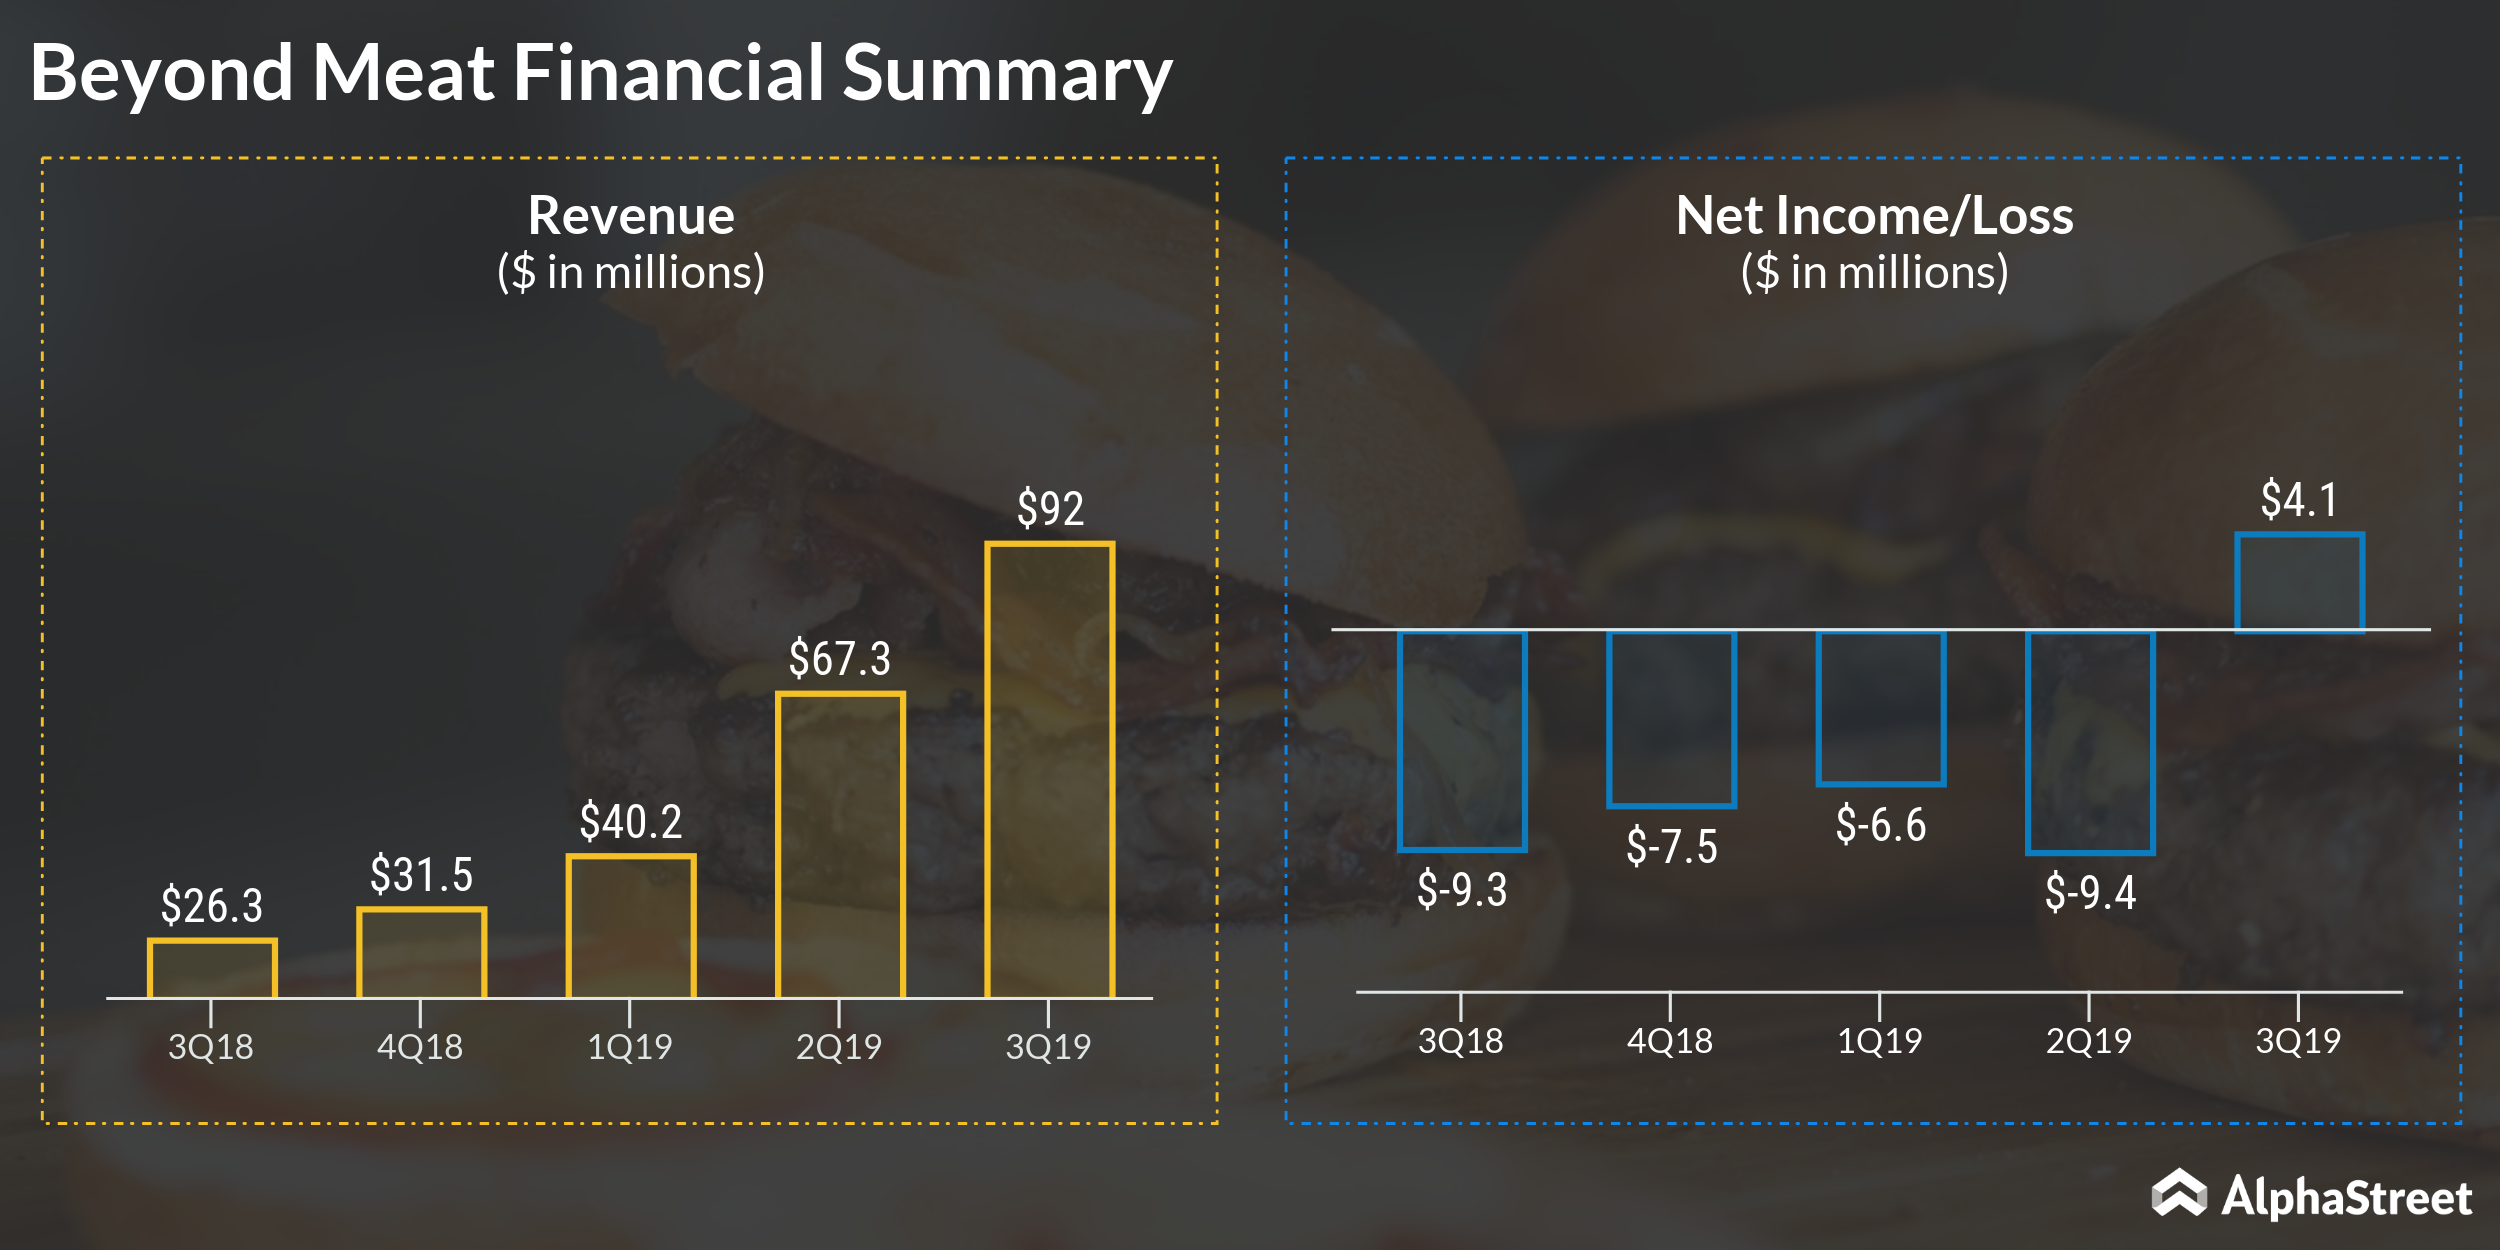 Beyond Meat (BYND) Financial Summary